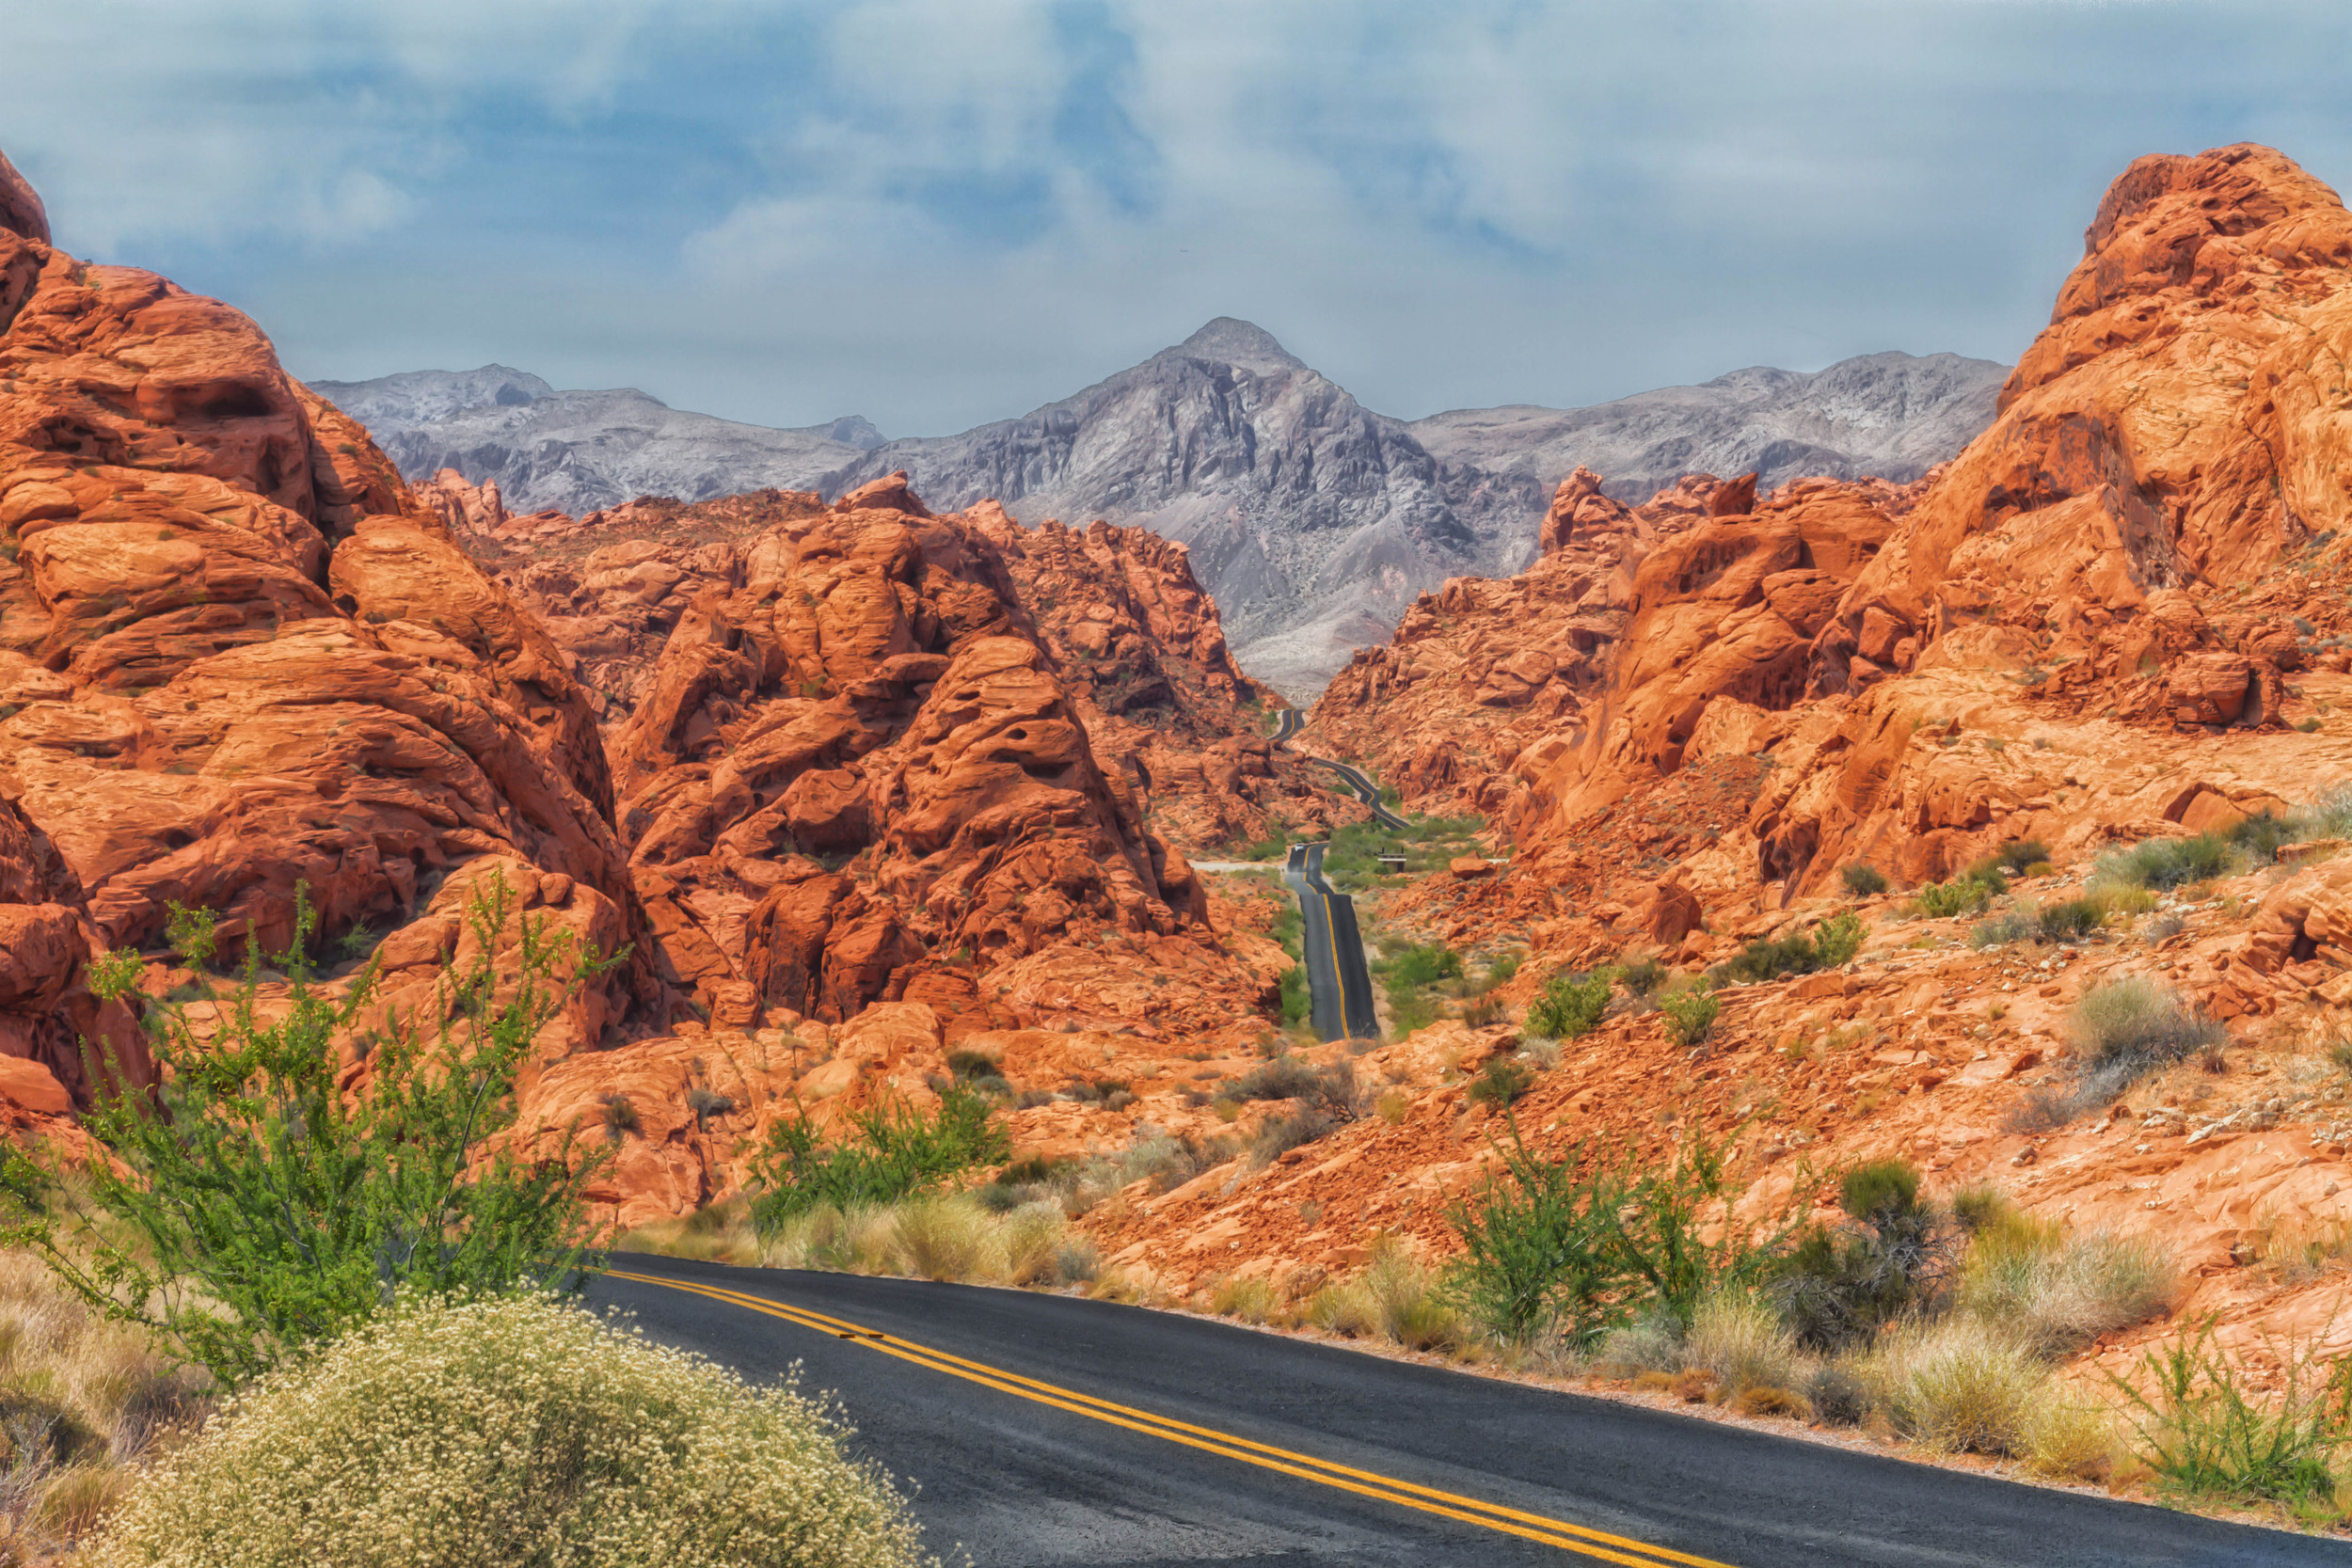 Valley of Fire State Park, Las Vegas, NV.  Shot with Canon 7D with 24-105mm 4.0L lens on tripod.